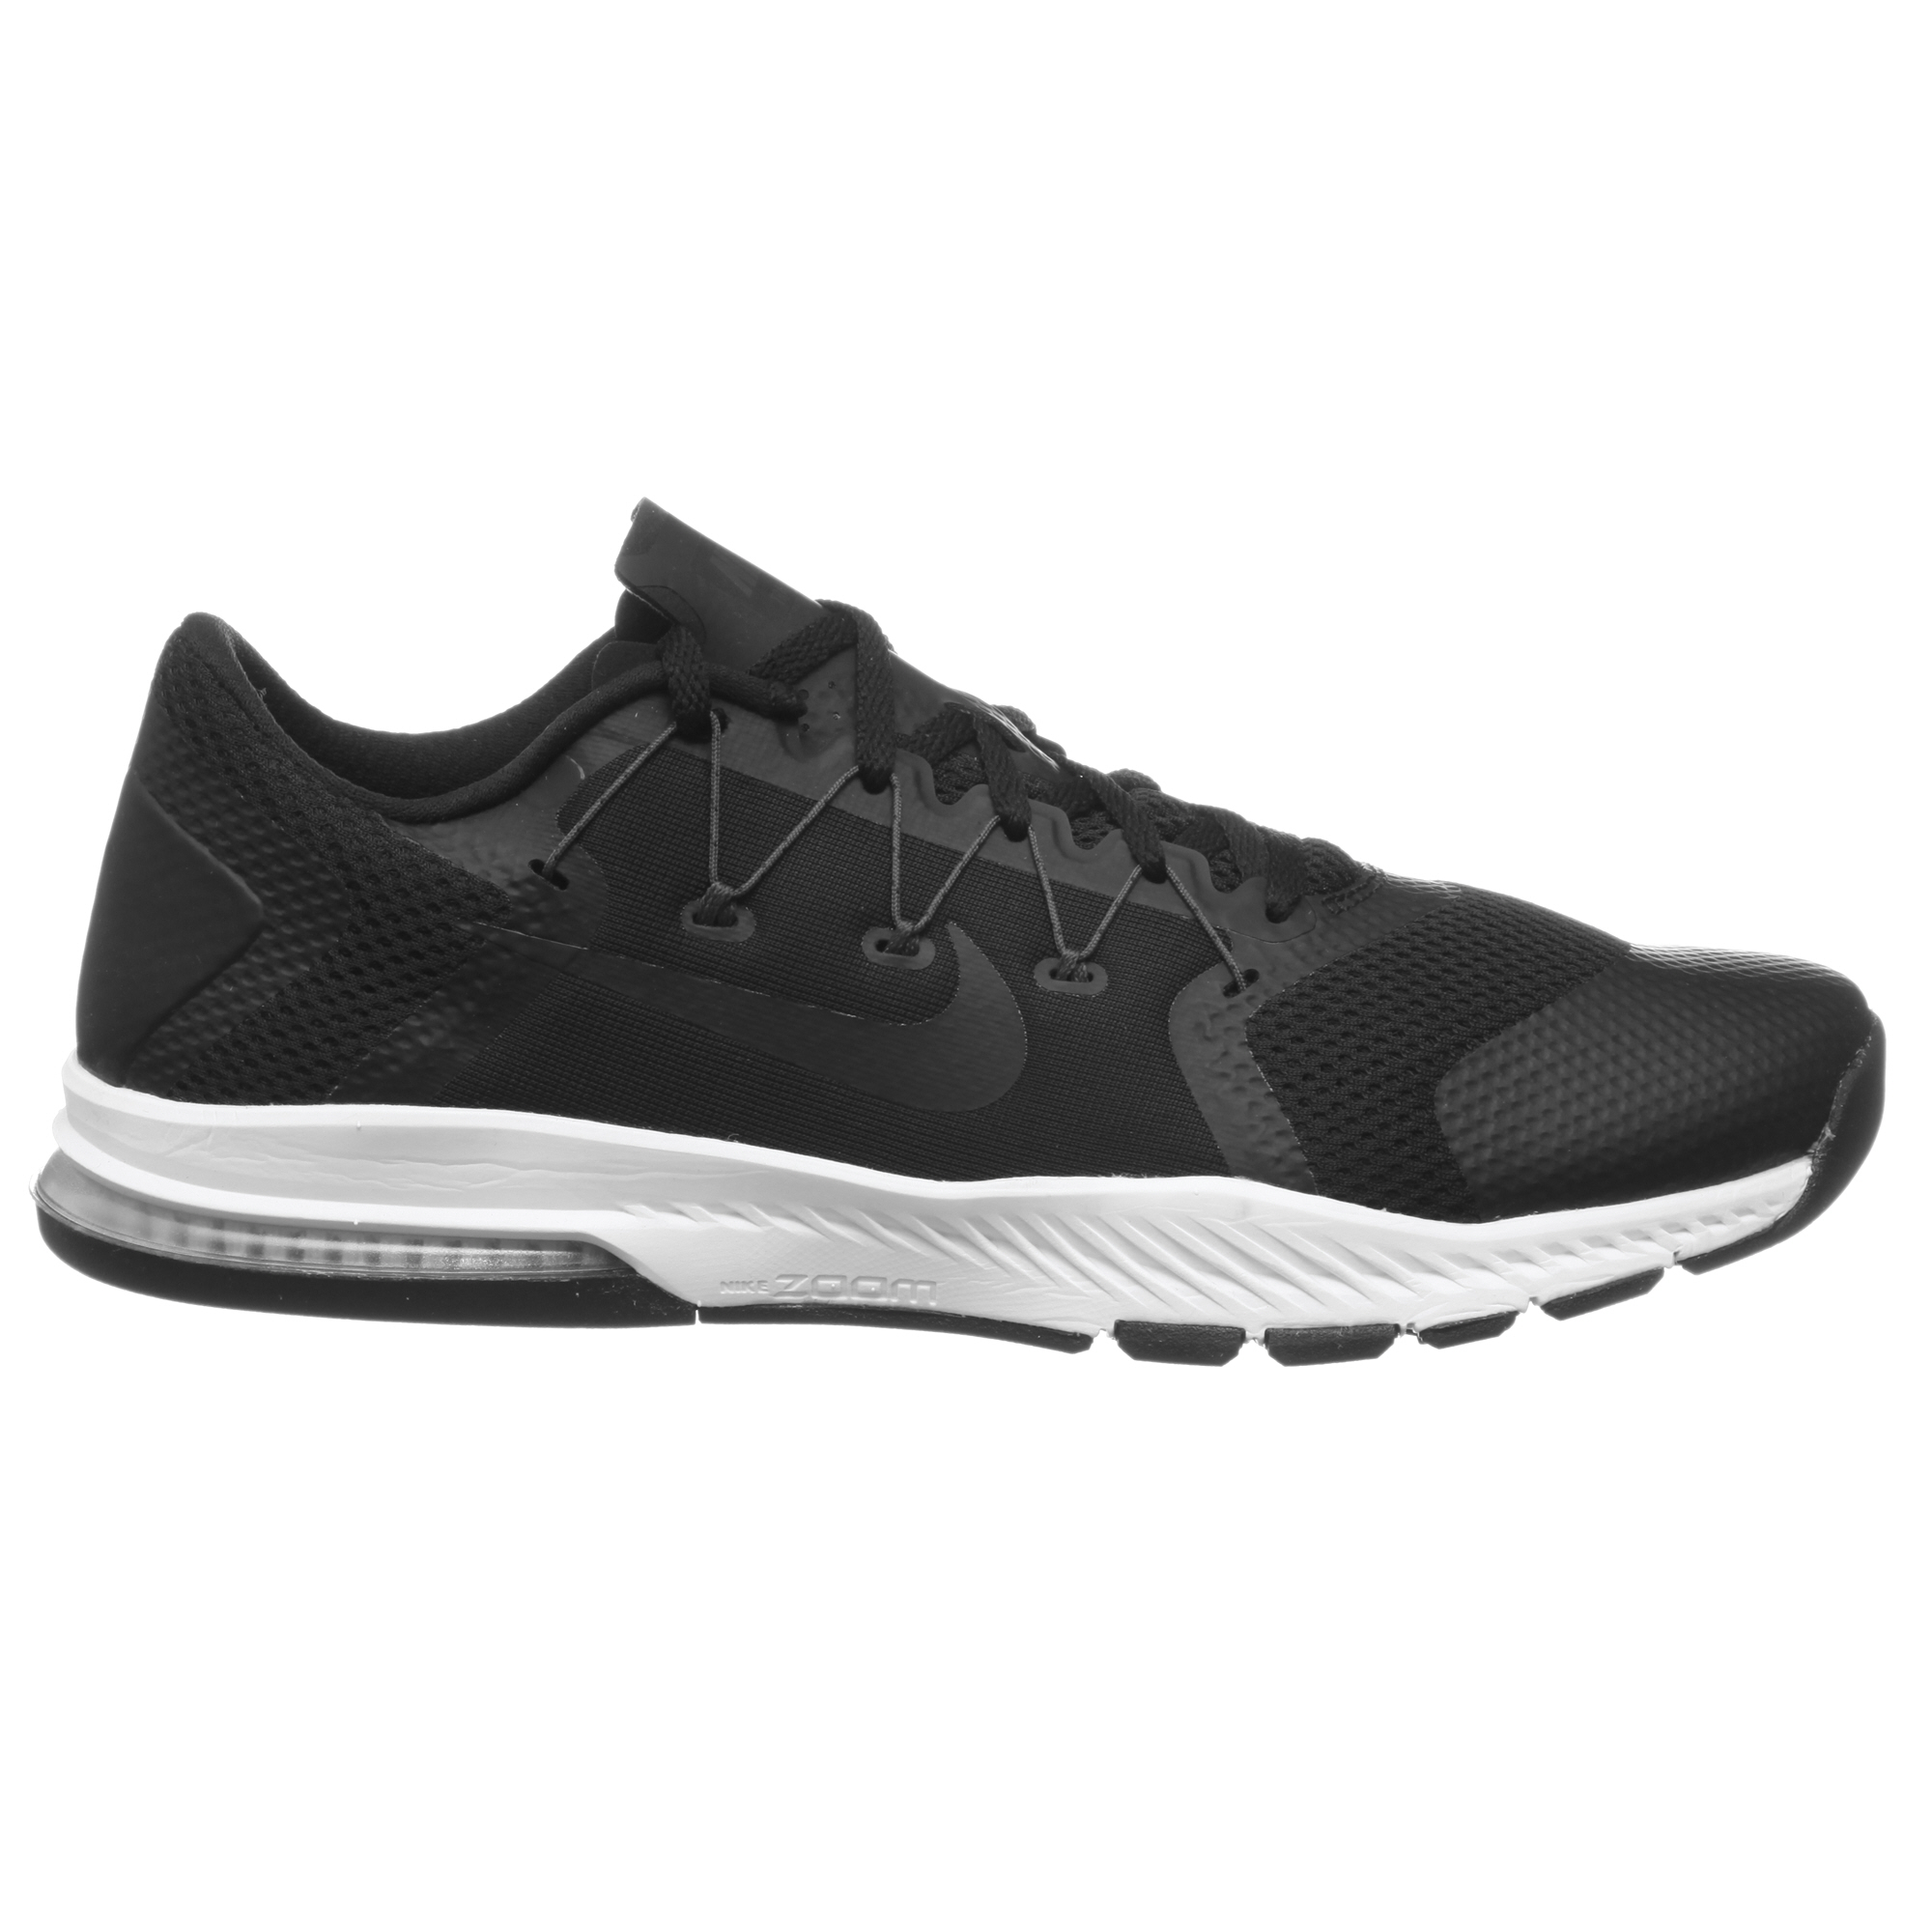 Nike Zoom Train Complete Training Shoe | Running shoes